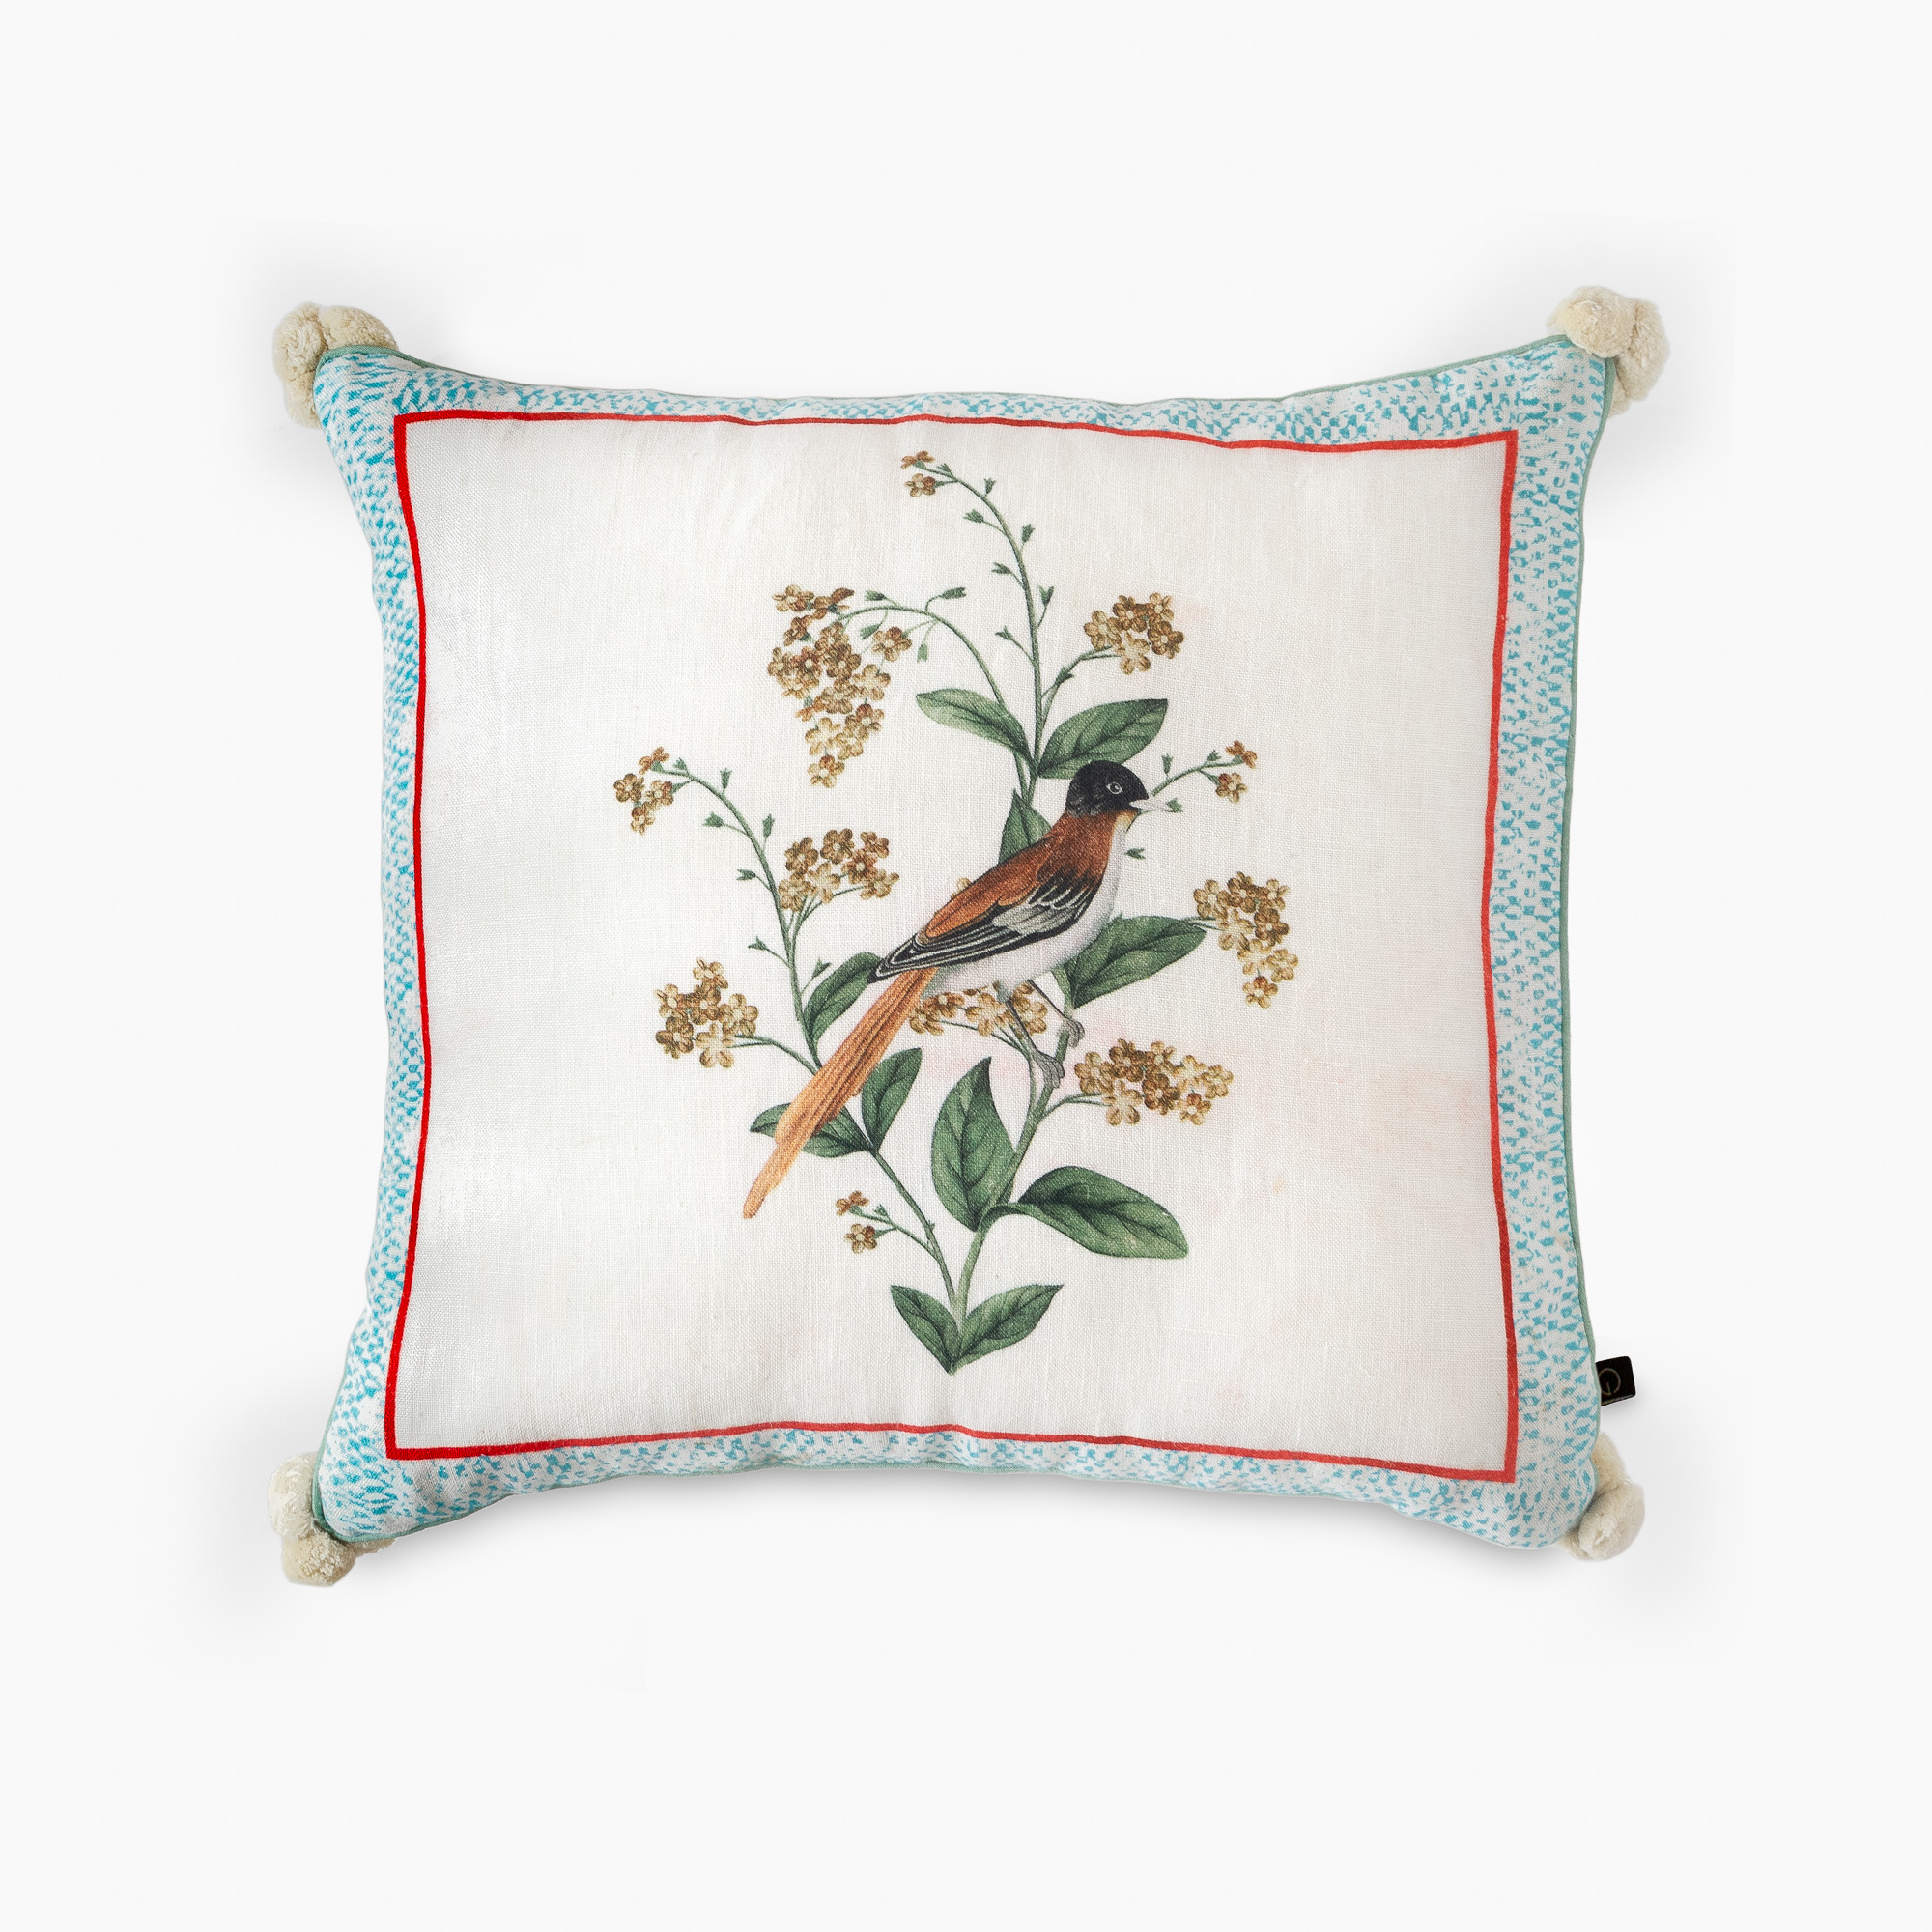 A FRAMED MEADOW CUSHION COVER